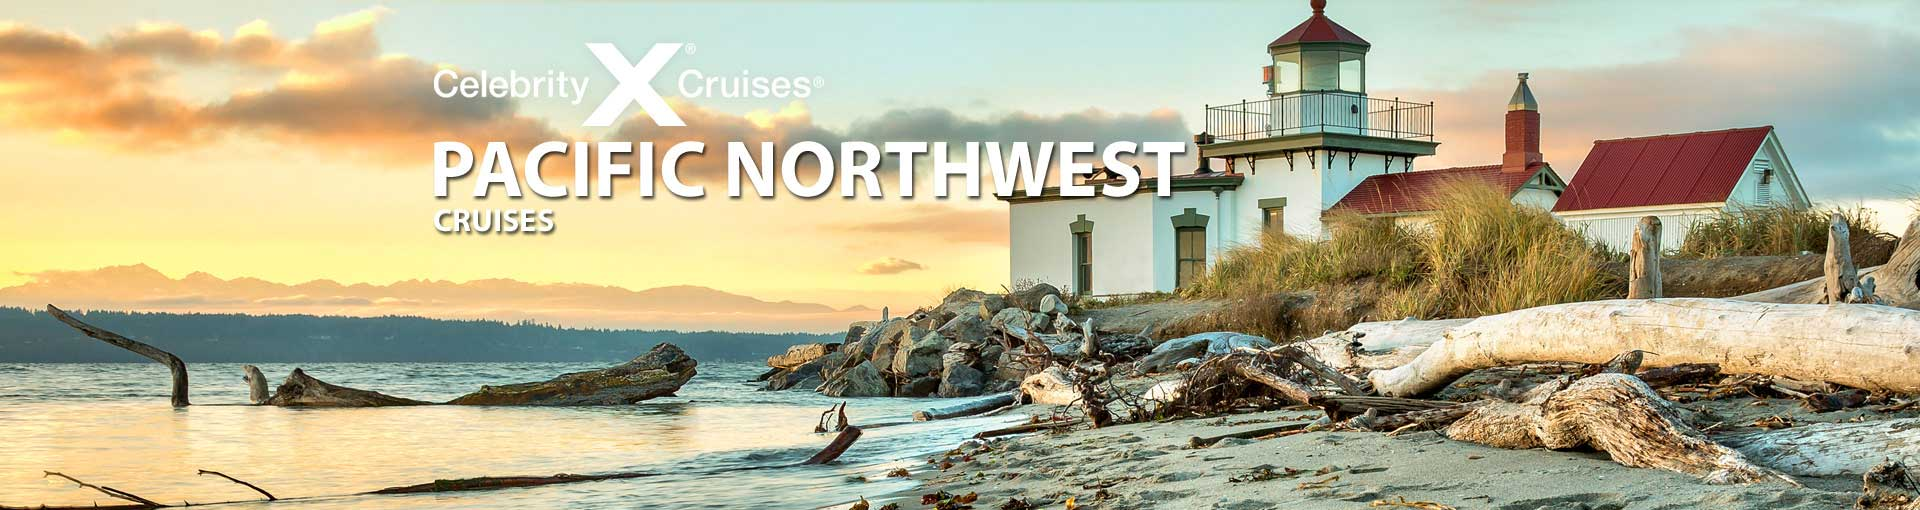 Celebrity Cruises Pacific Northwest Cruises